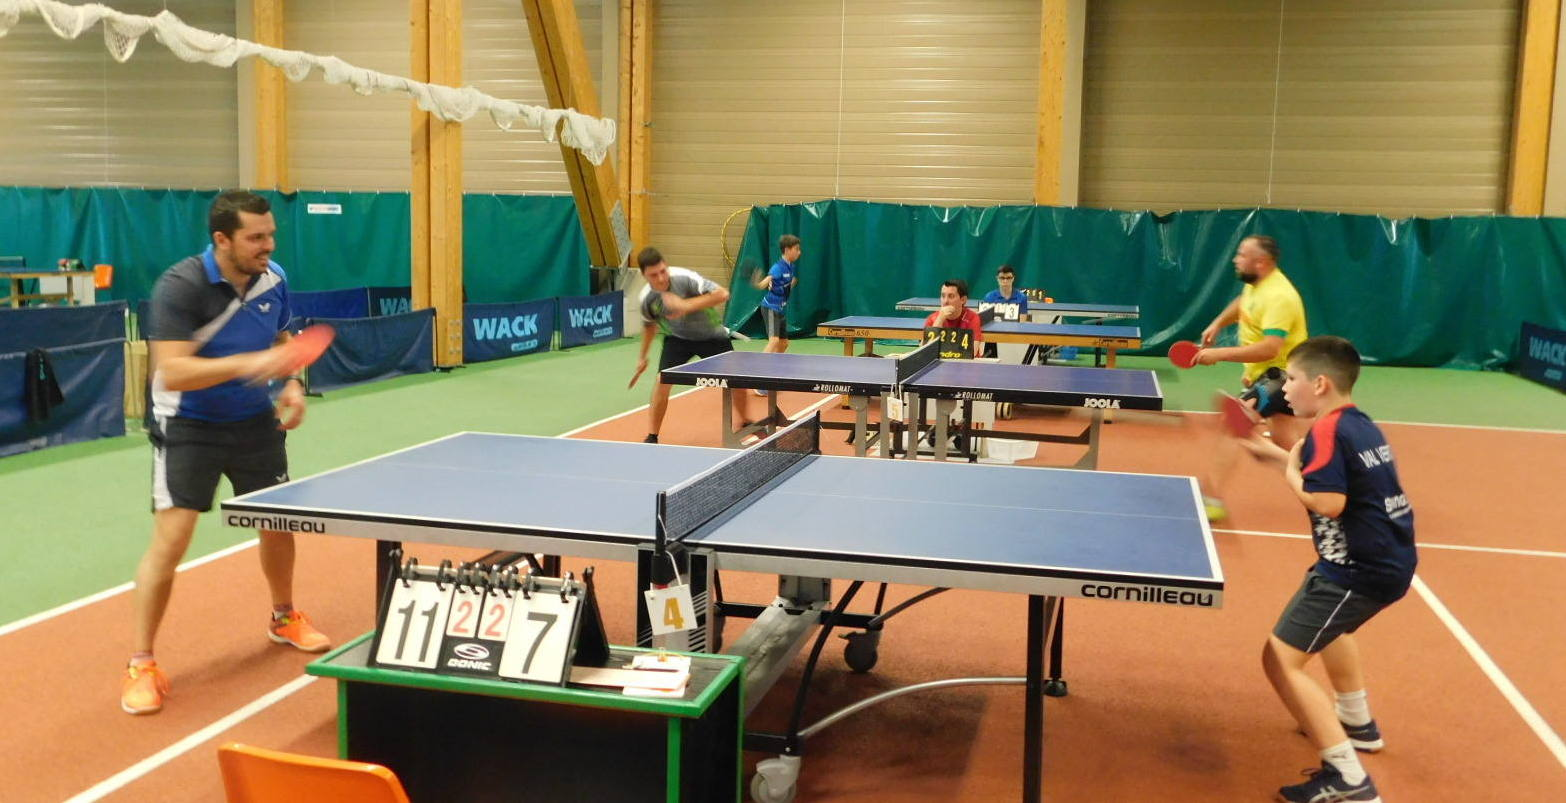 Wack Sport Tennis De Table Belle Participation Au Tournoi De Tennis De Table